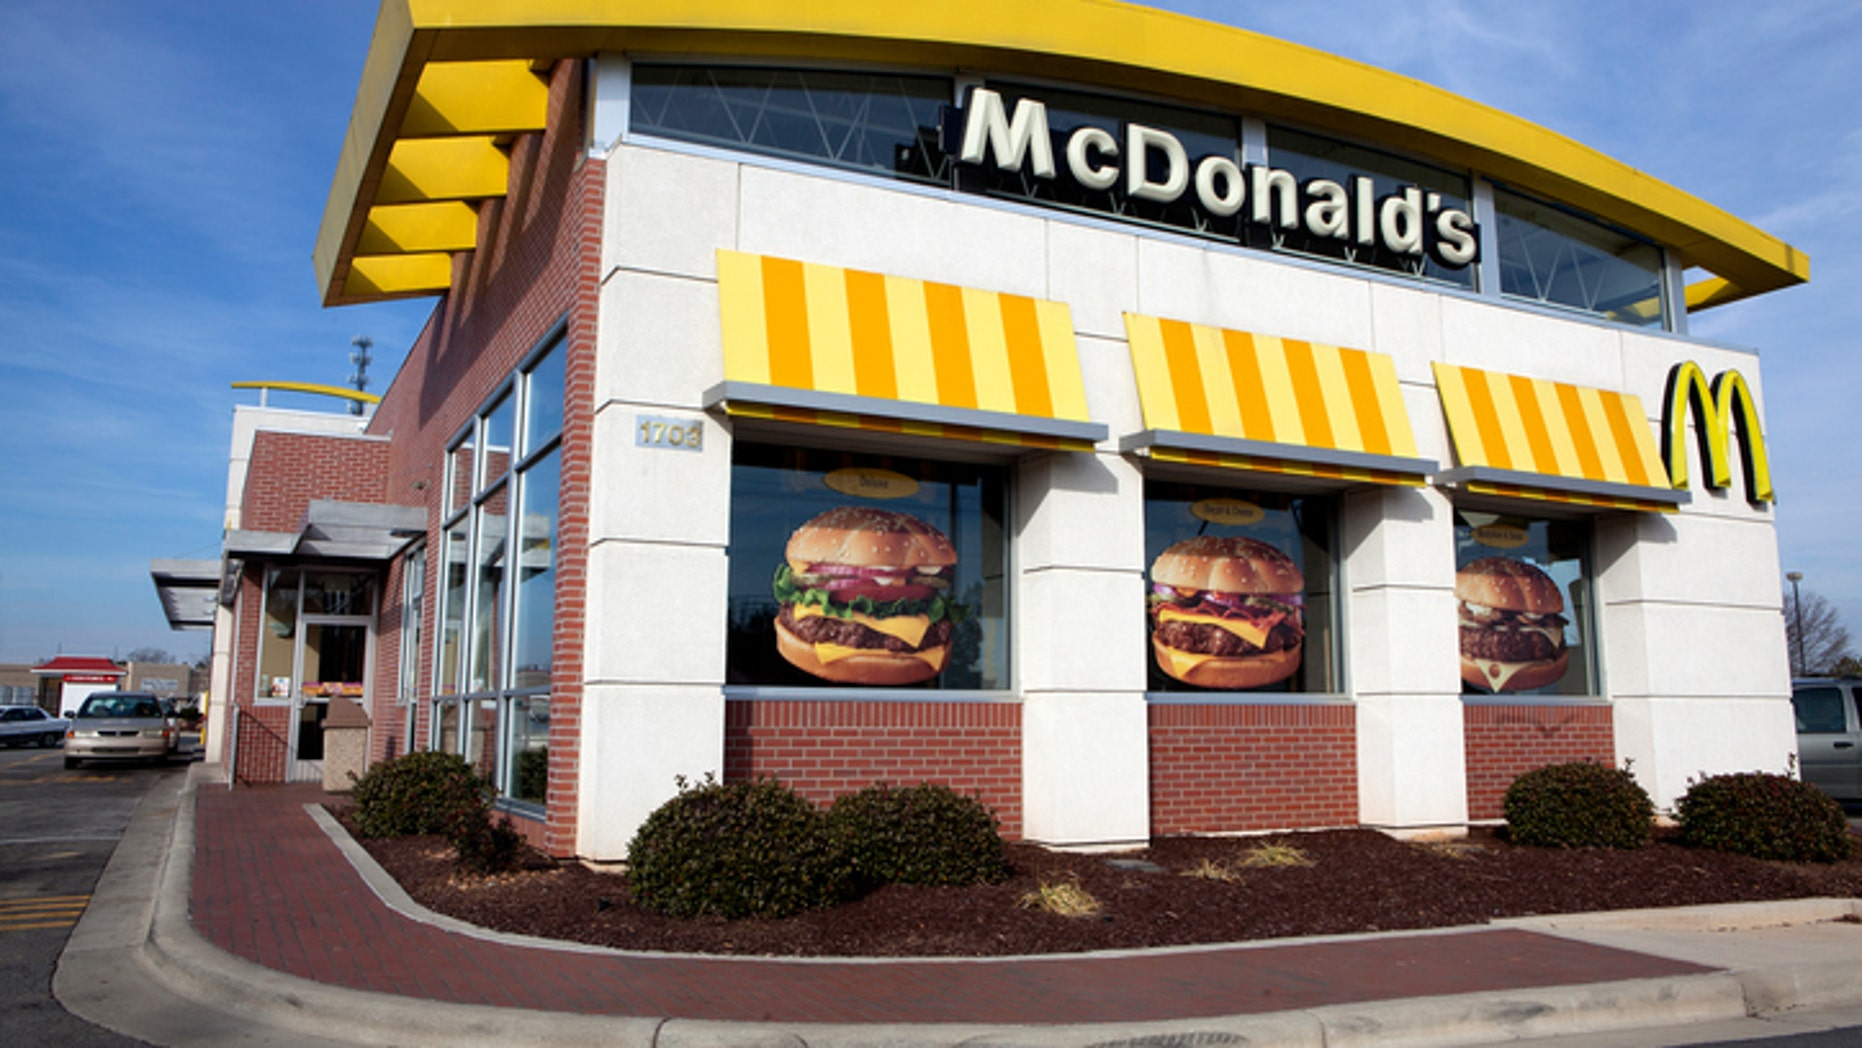 Have you visited one of these McDonald's locations?